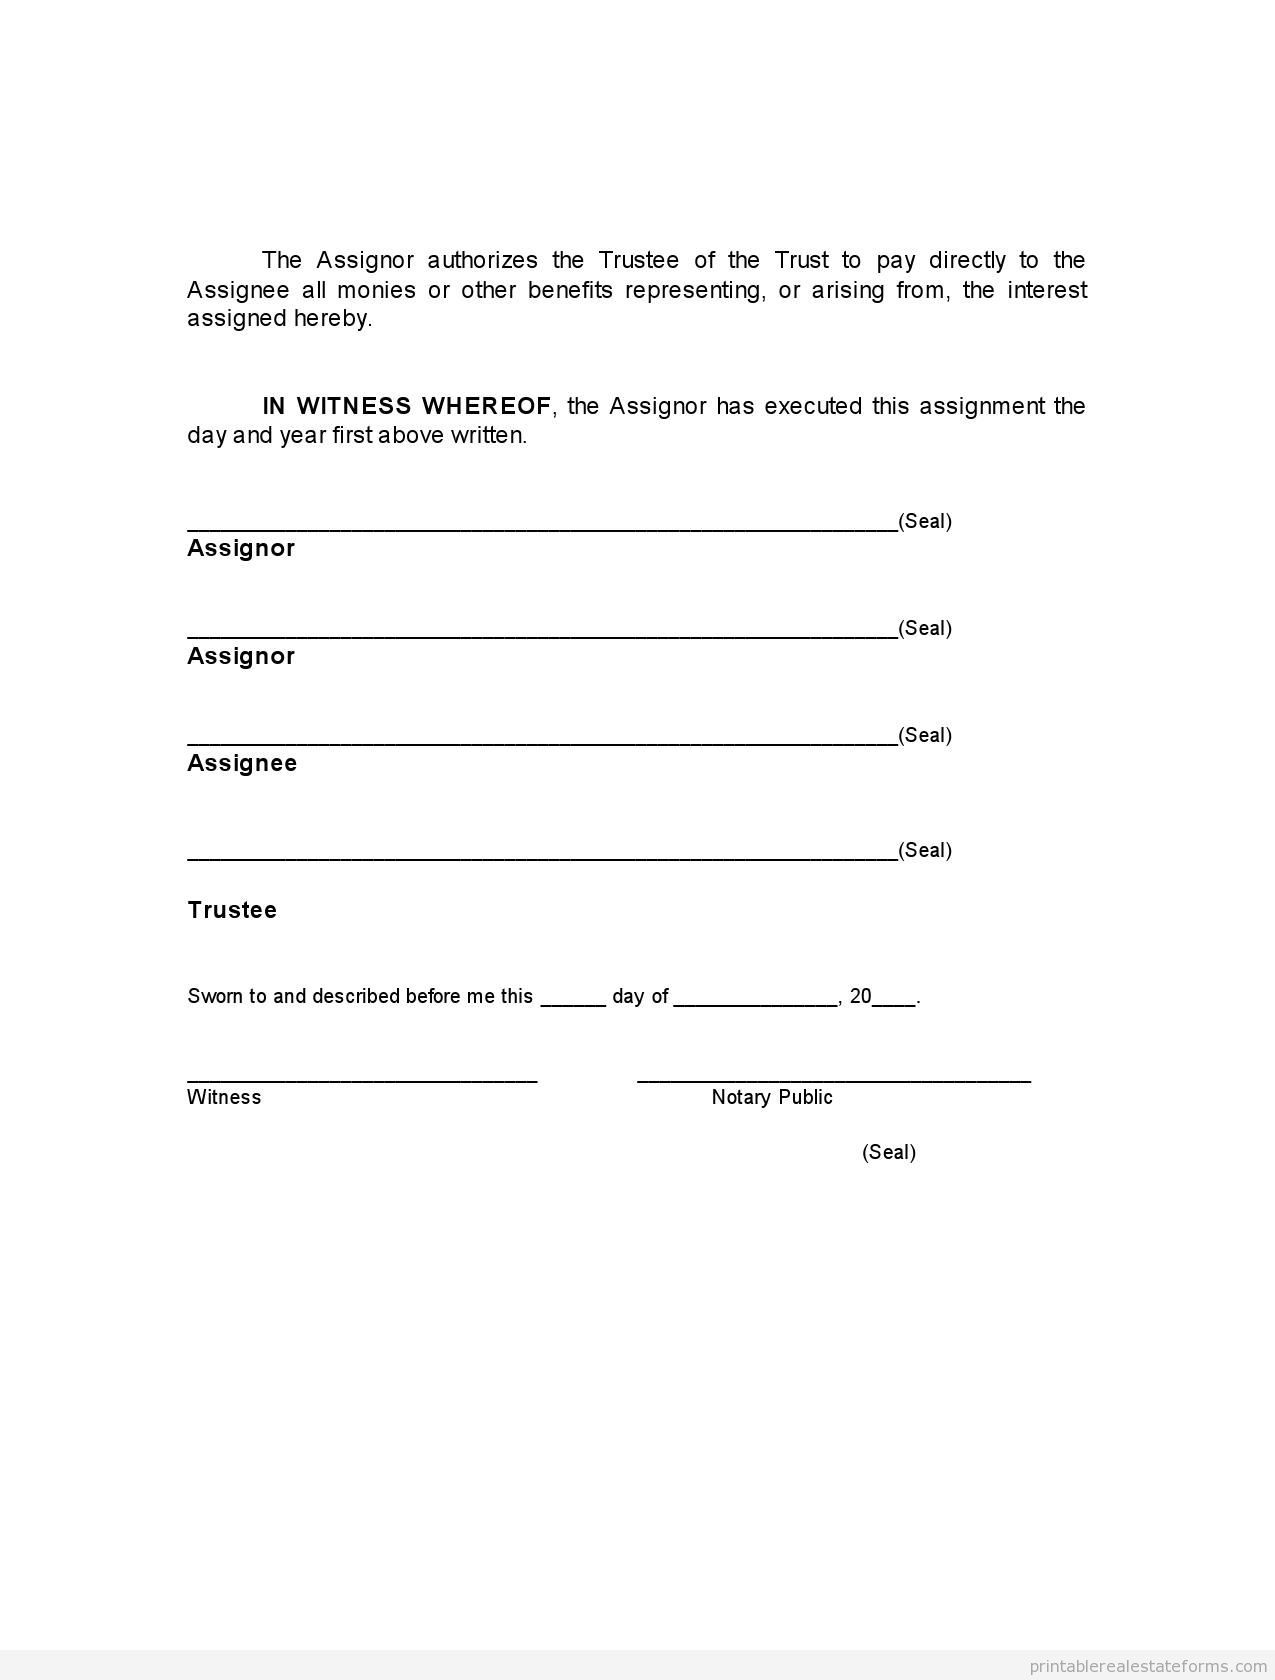 Sample Printable Assignment Of Beneficial Interest In Trus Form